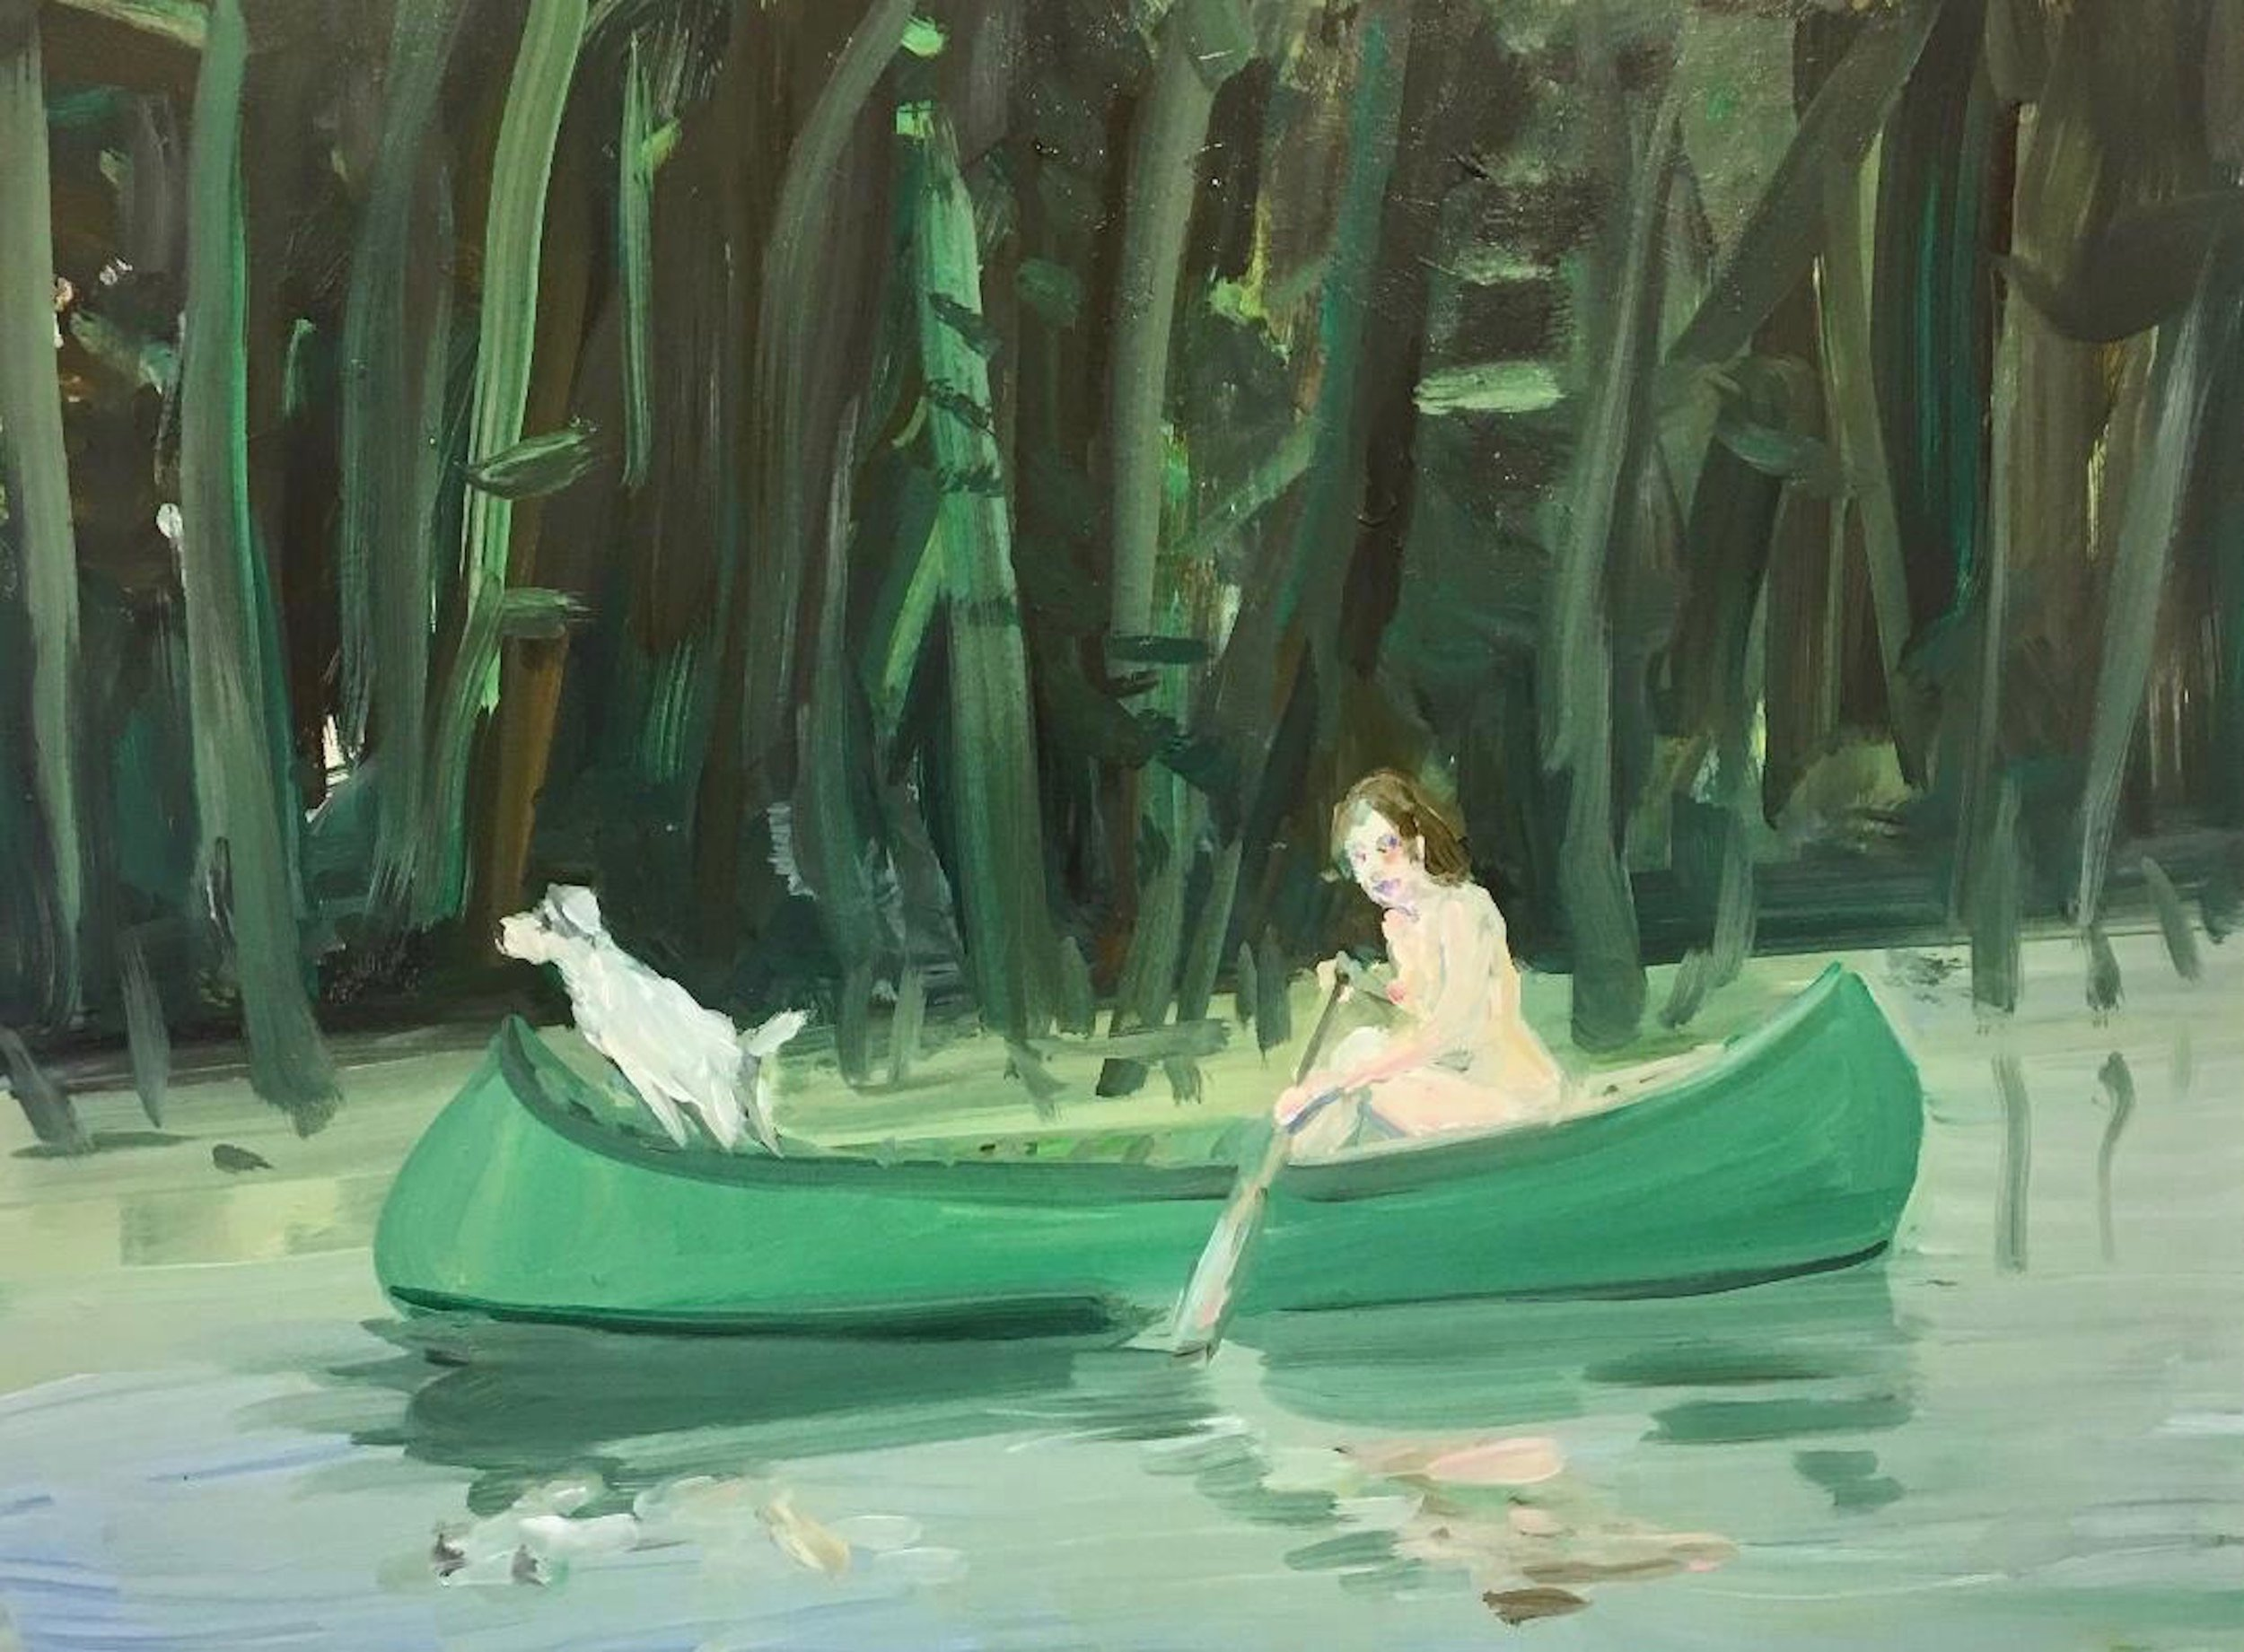 Deborah_Brown_Canoeist5_2019_oil_on_Masonite_18x24inches.jpg